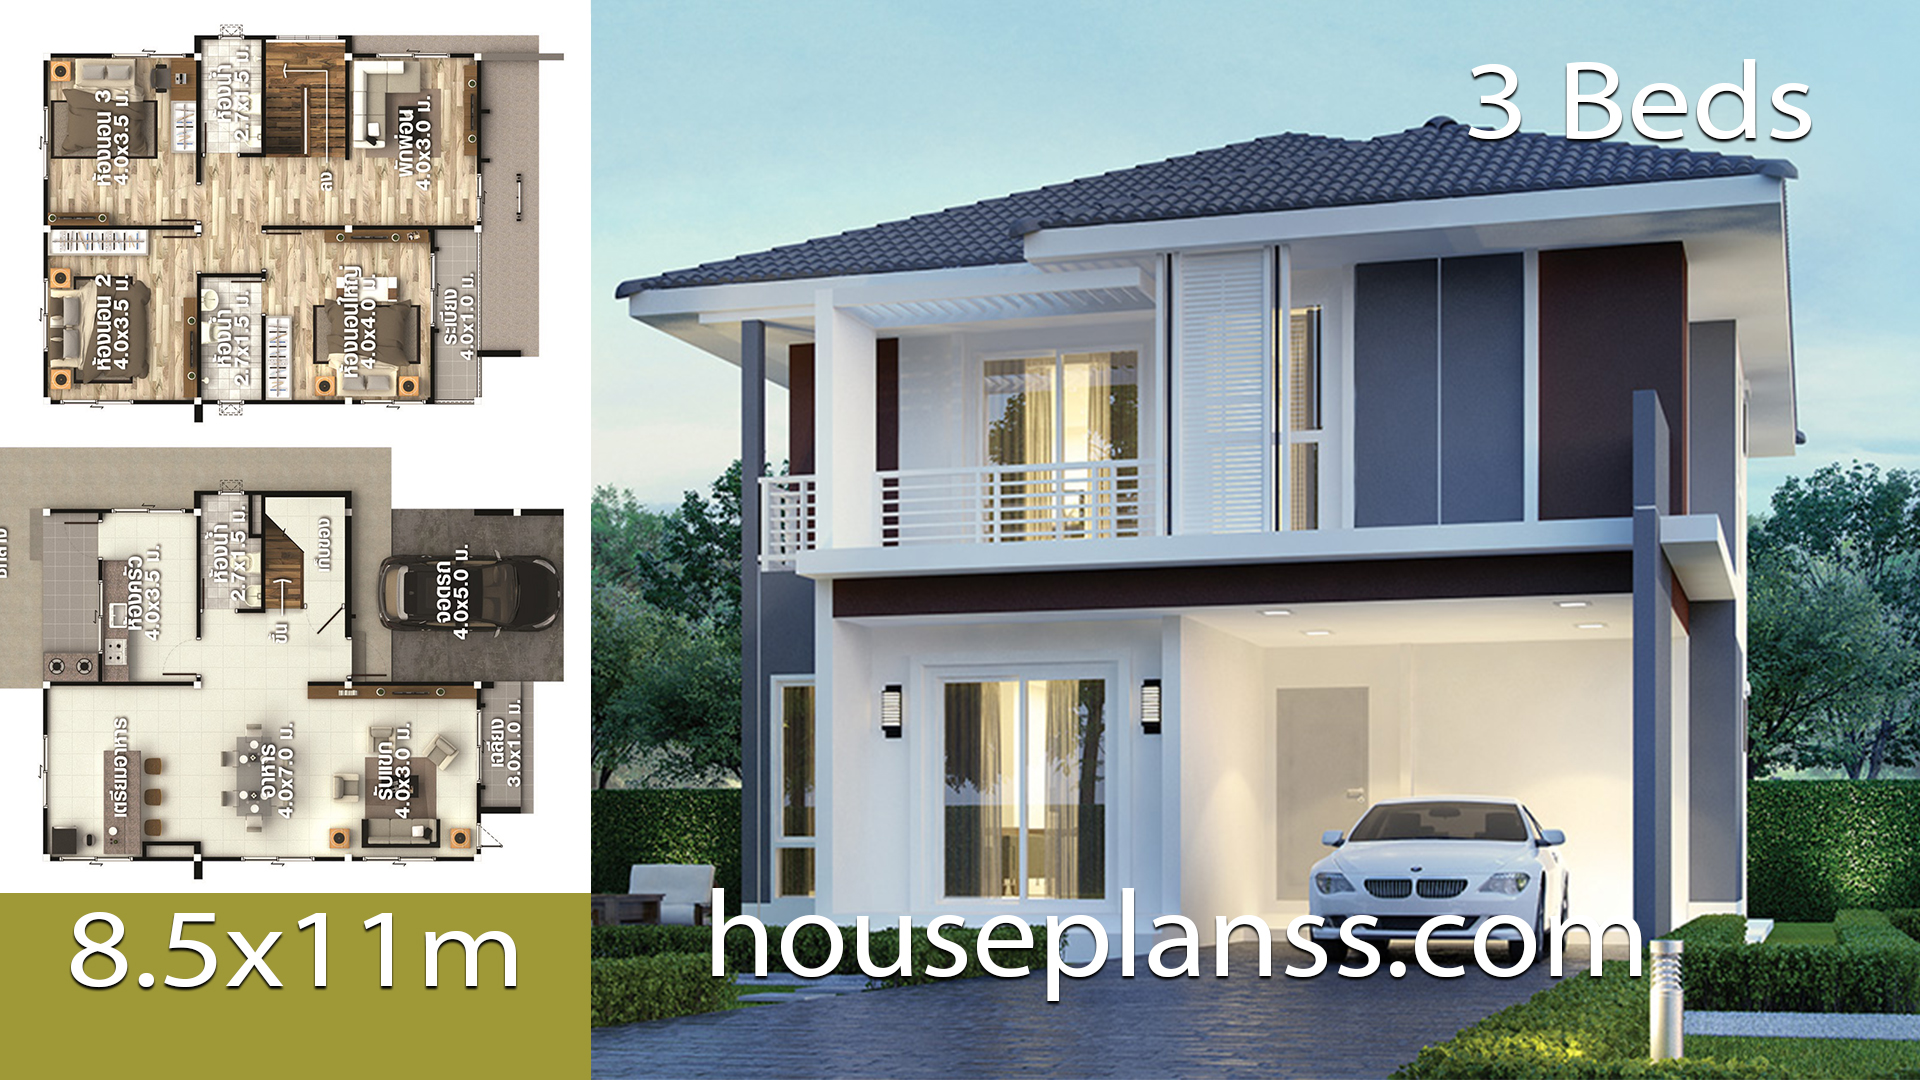 House Plans design Idea 8.5×11 with 3 Bedrooms